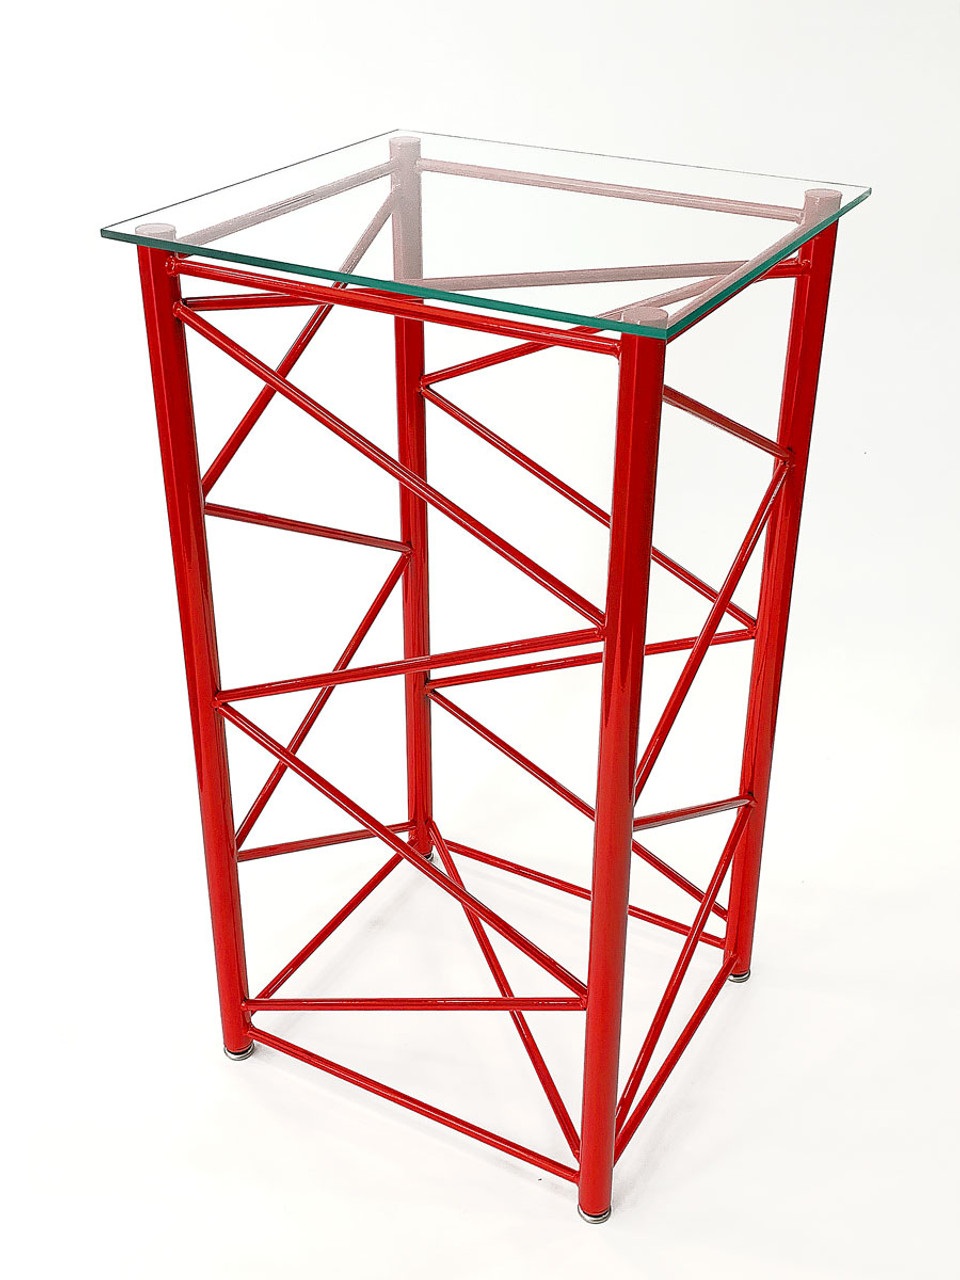 Vertical Lattice Boom Section Display Table - Manitowoc Red